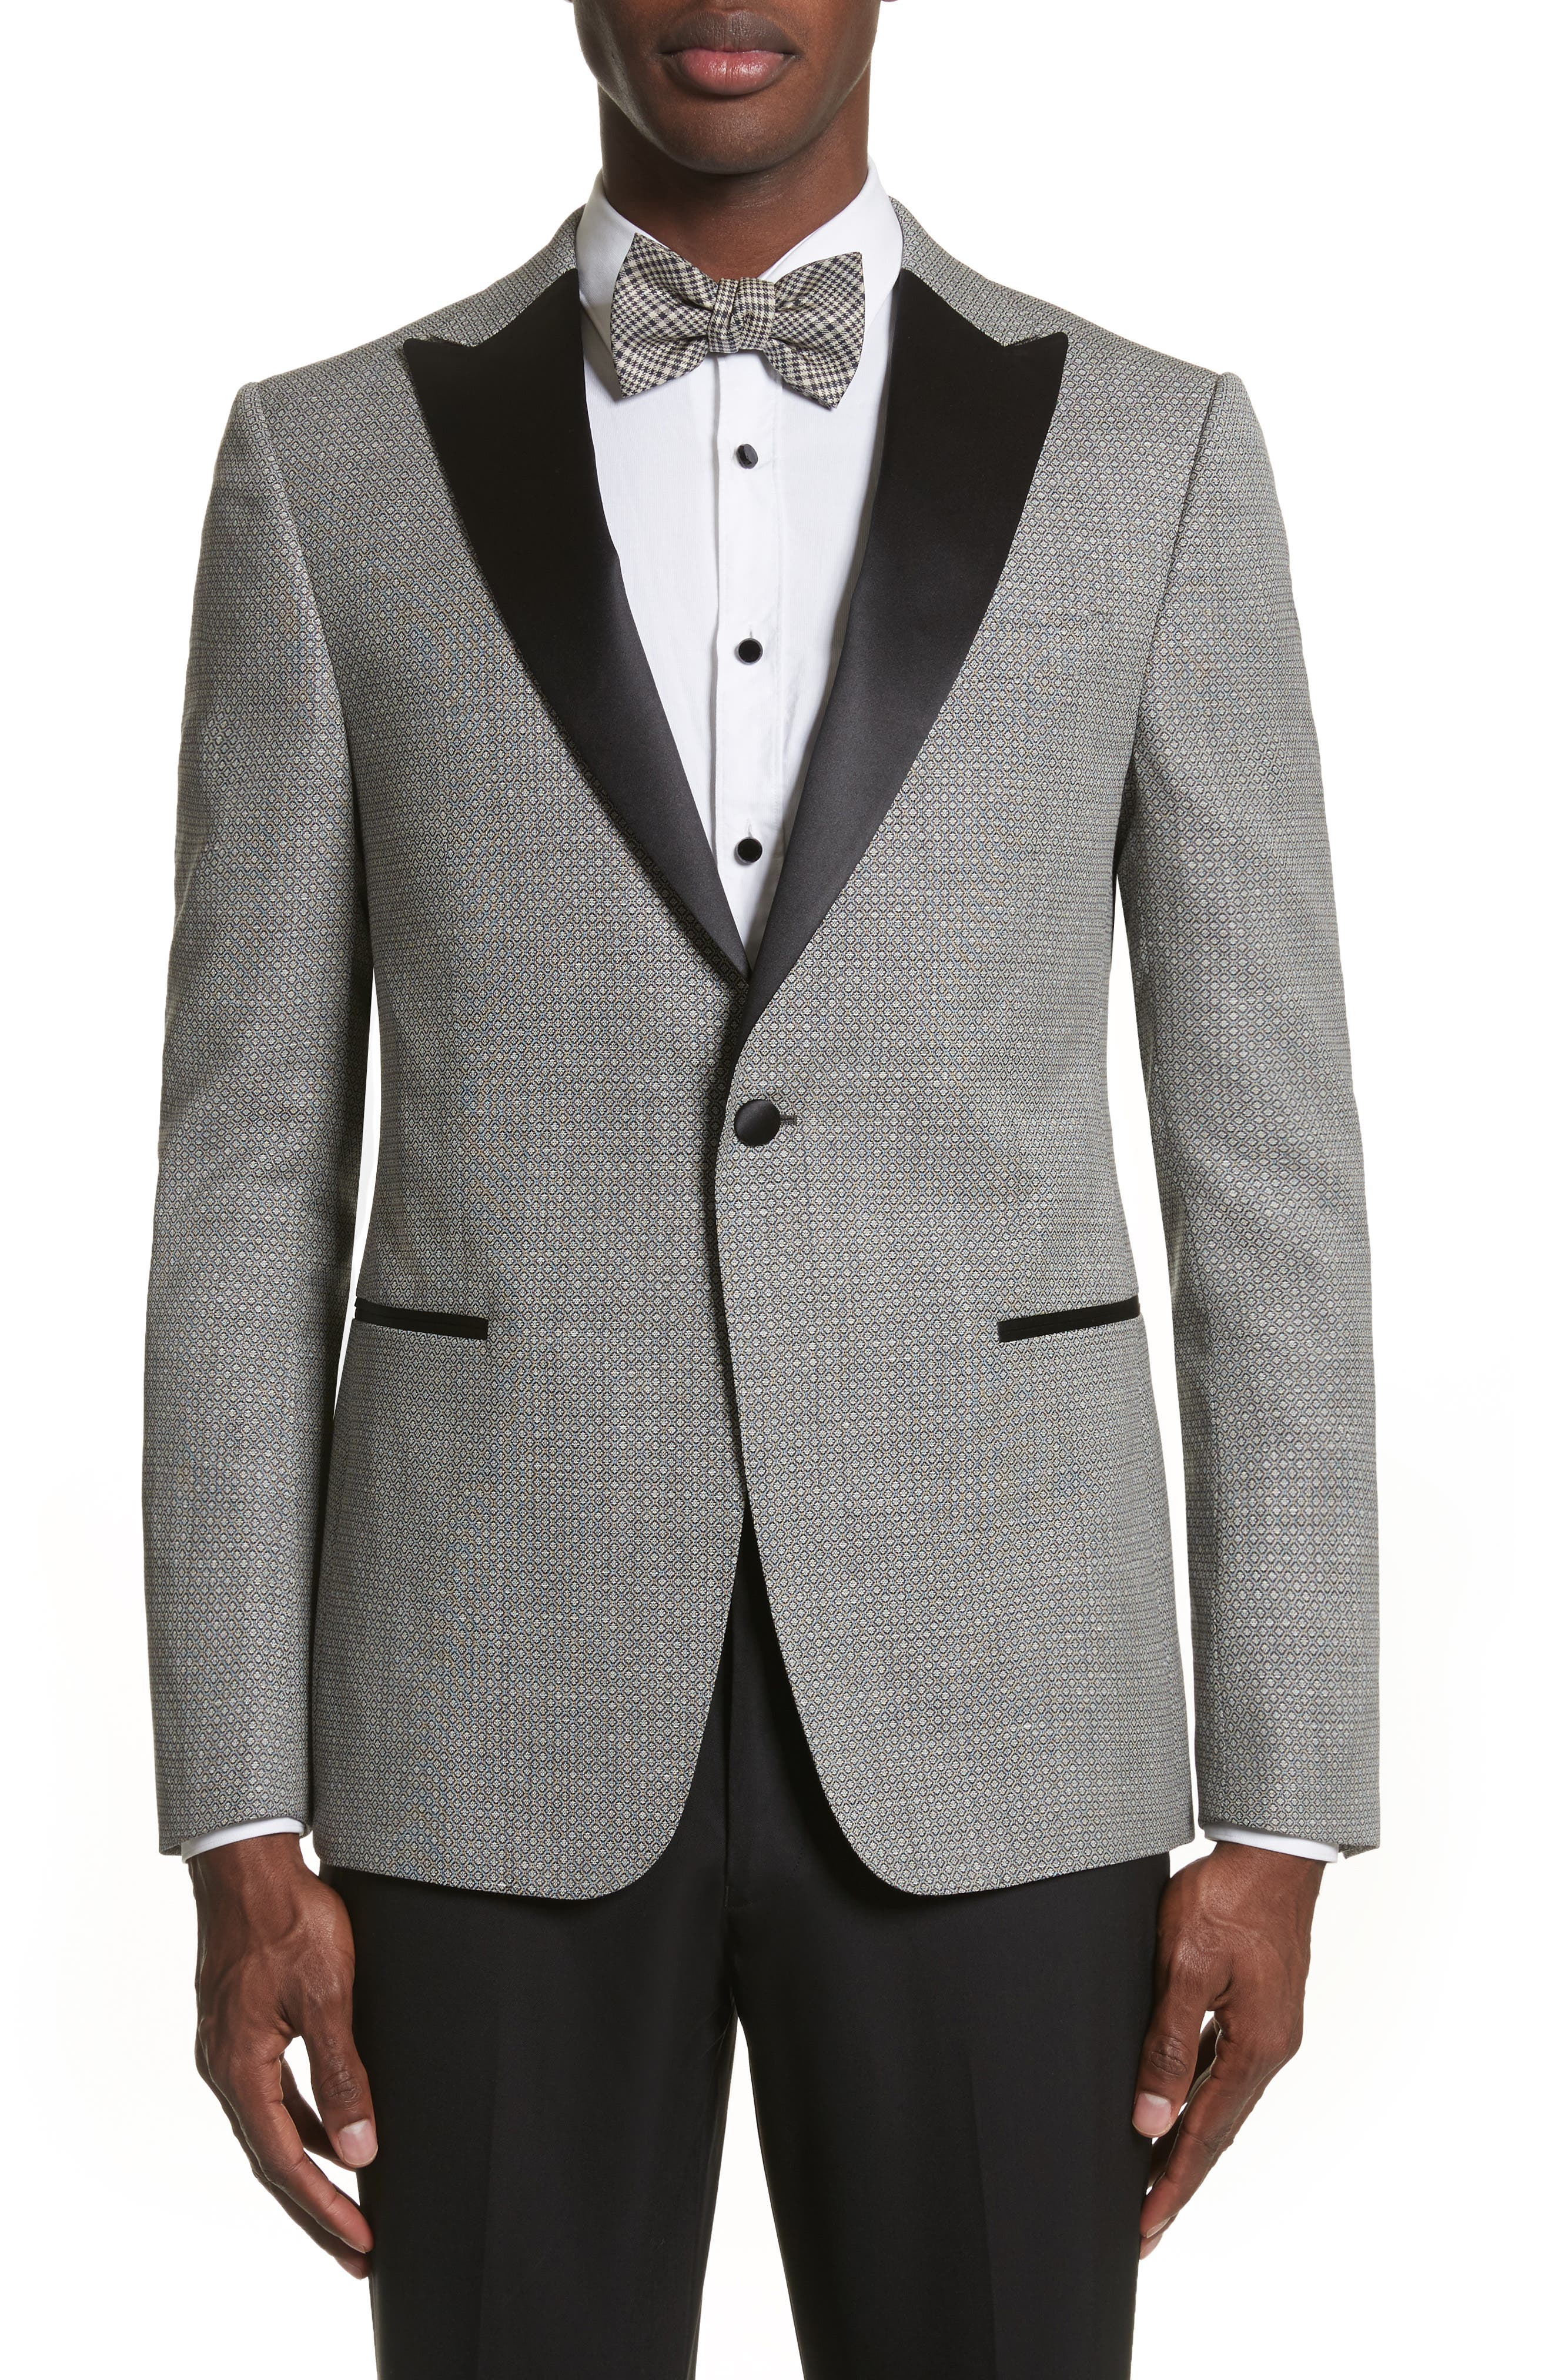 Z Zegna Classic Fit Stretch Wool & Linen Dinner Jacket